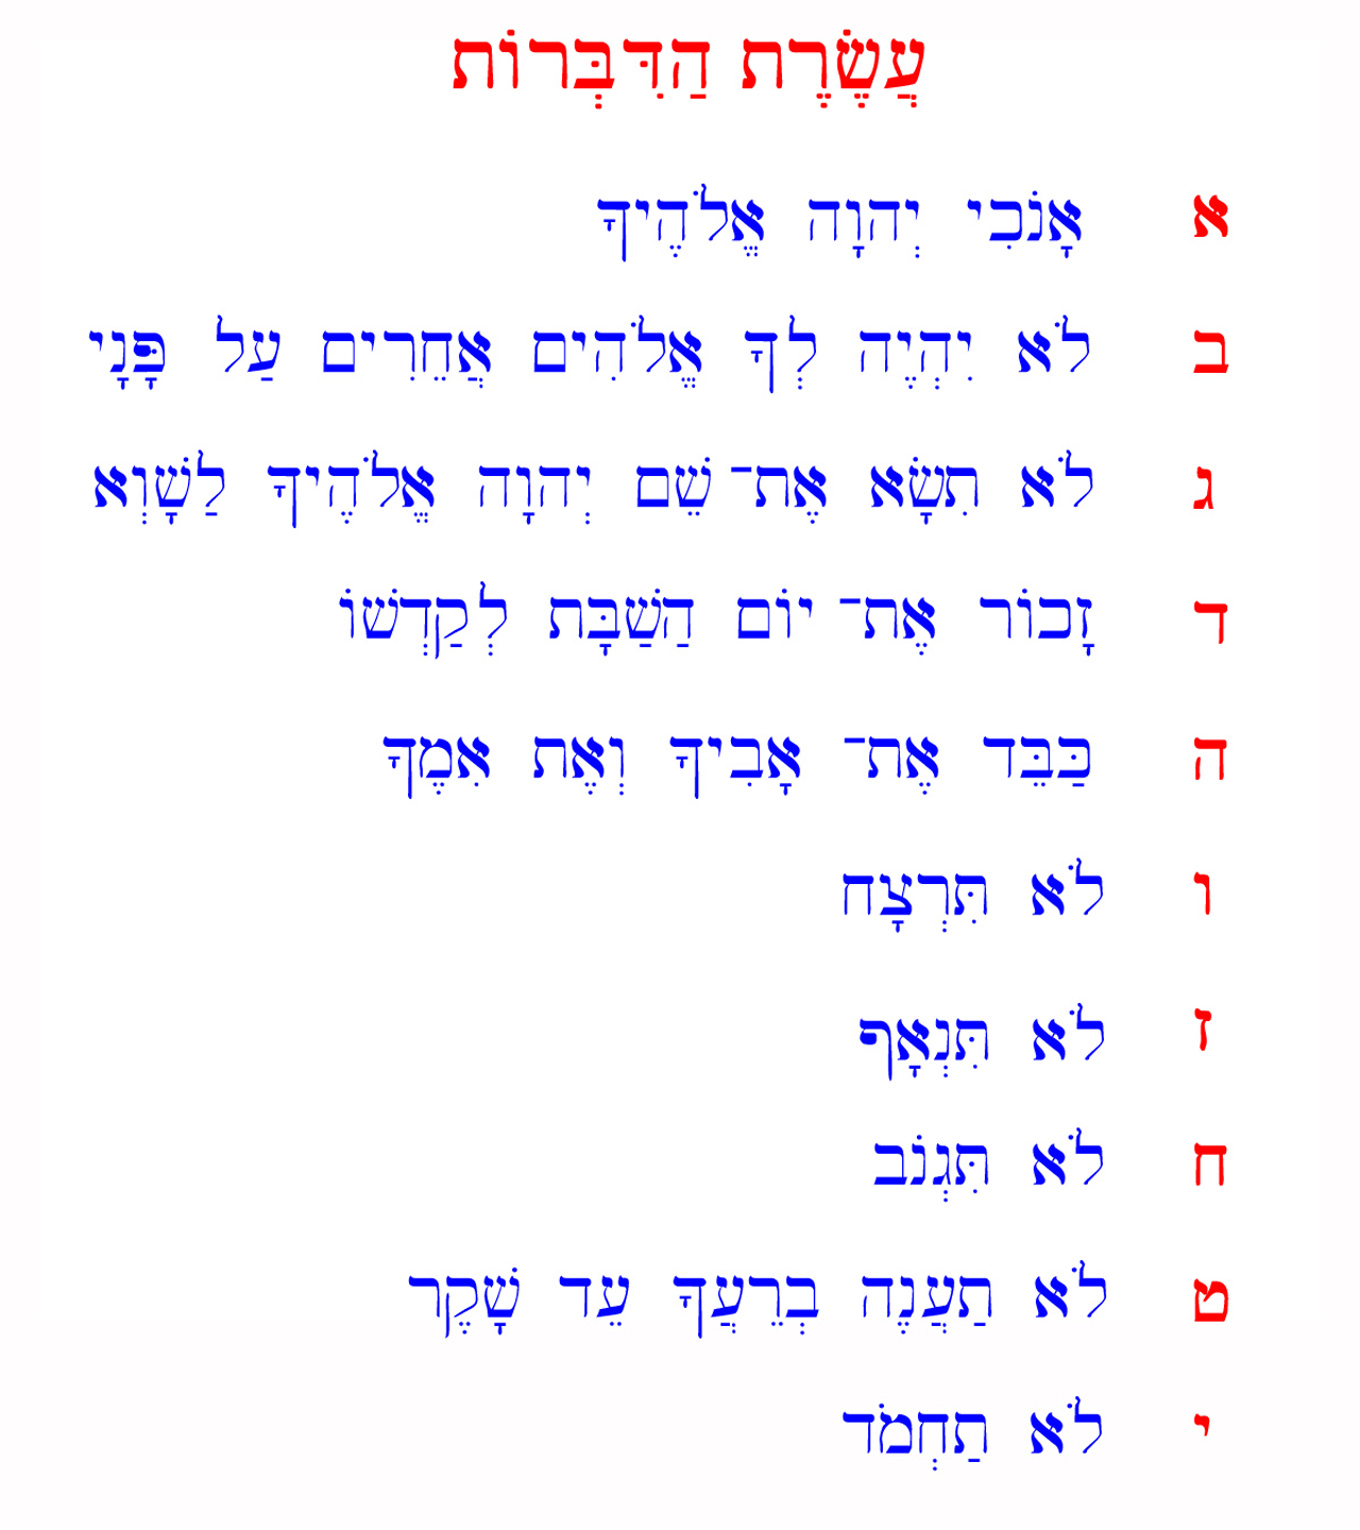 The alphabet of the Hebrew Scripture.